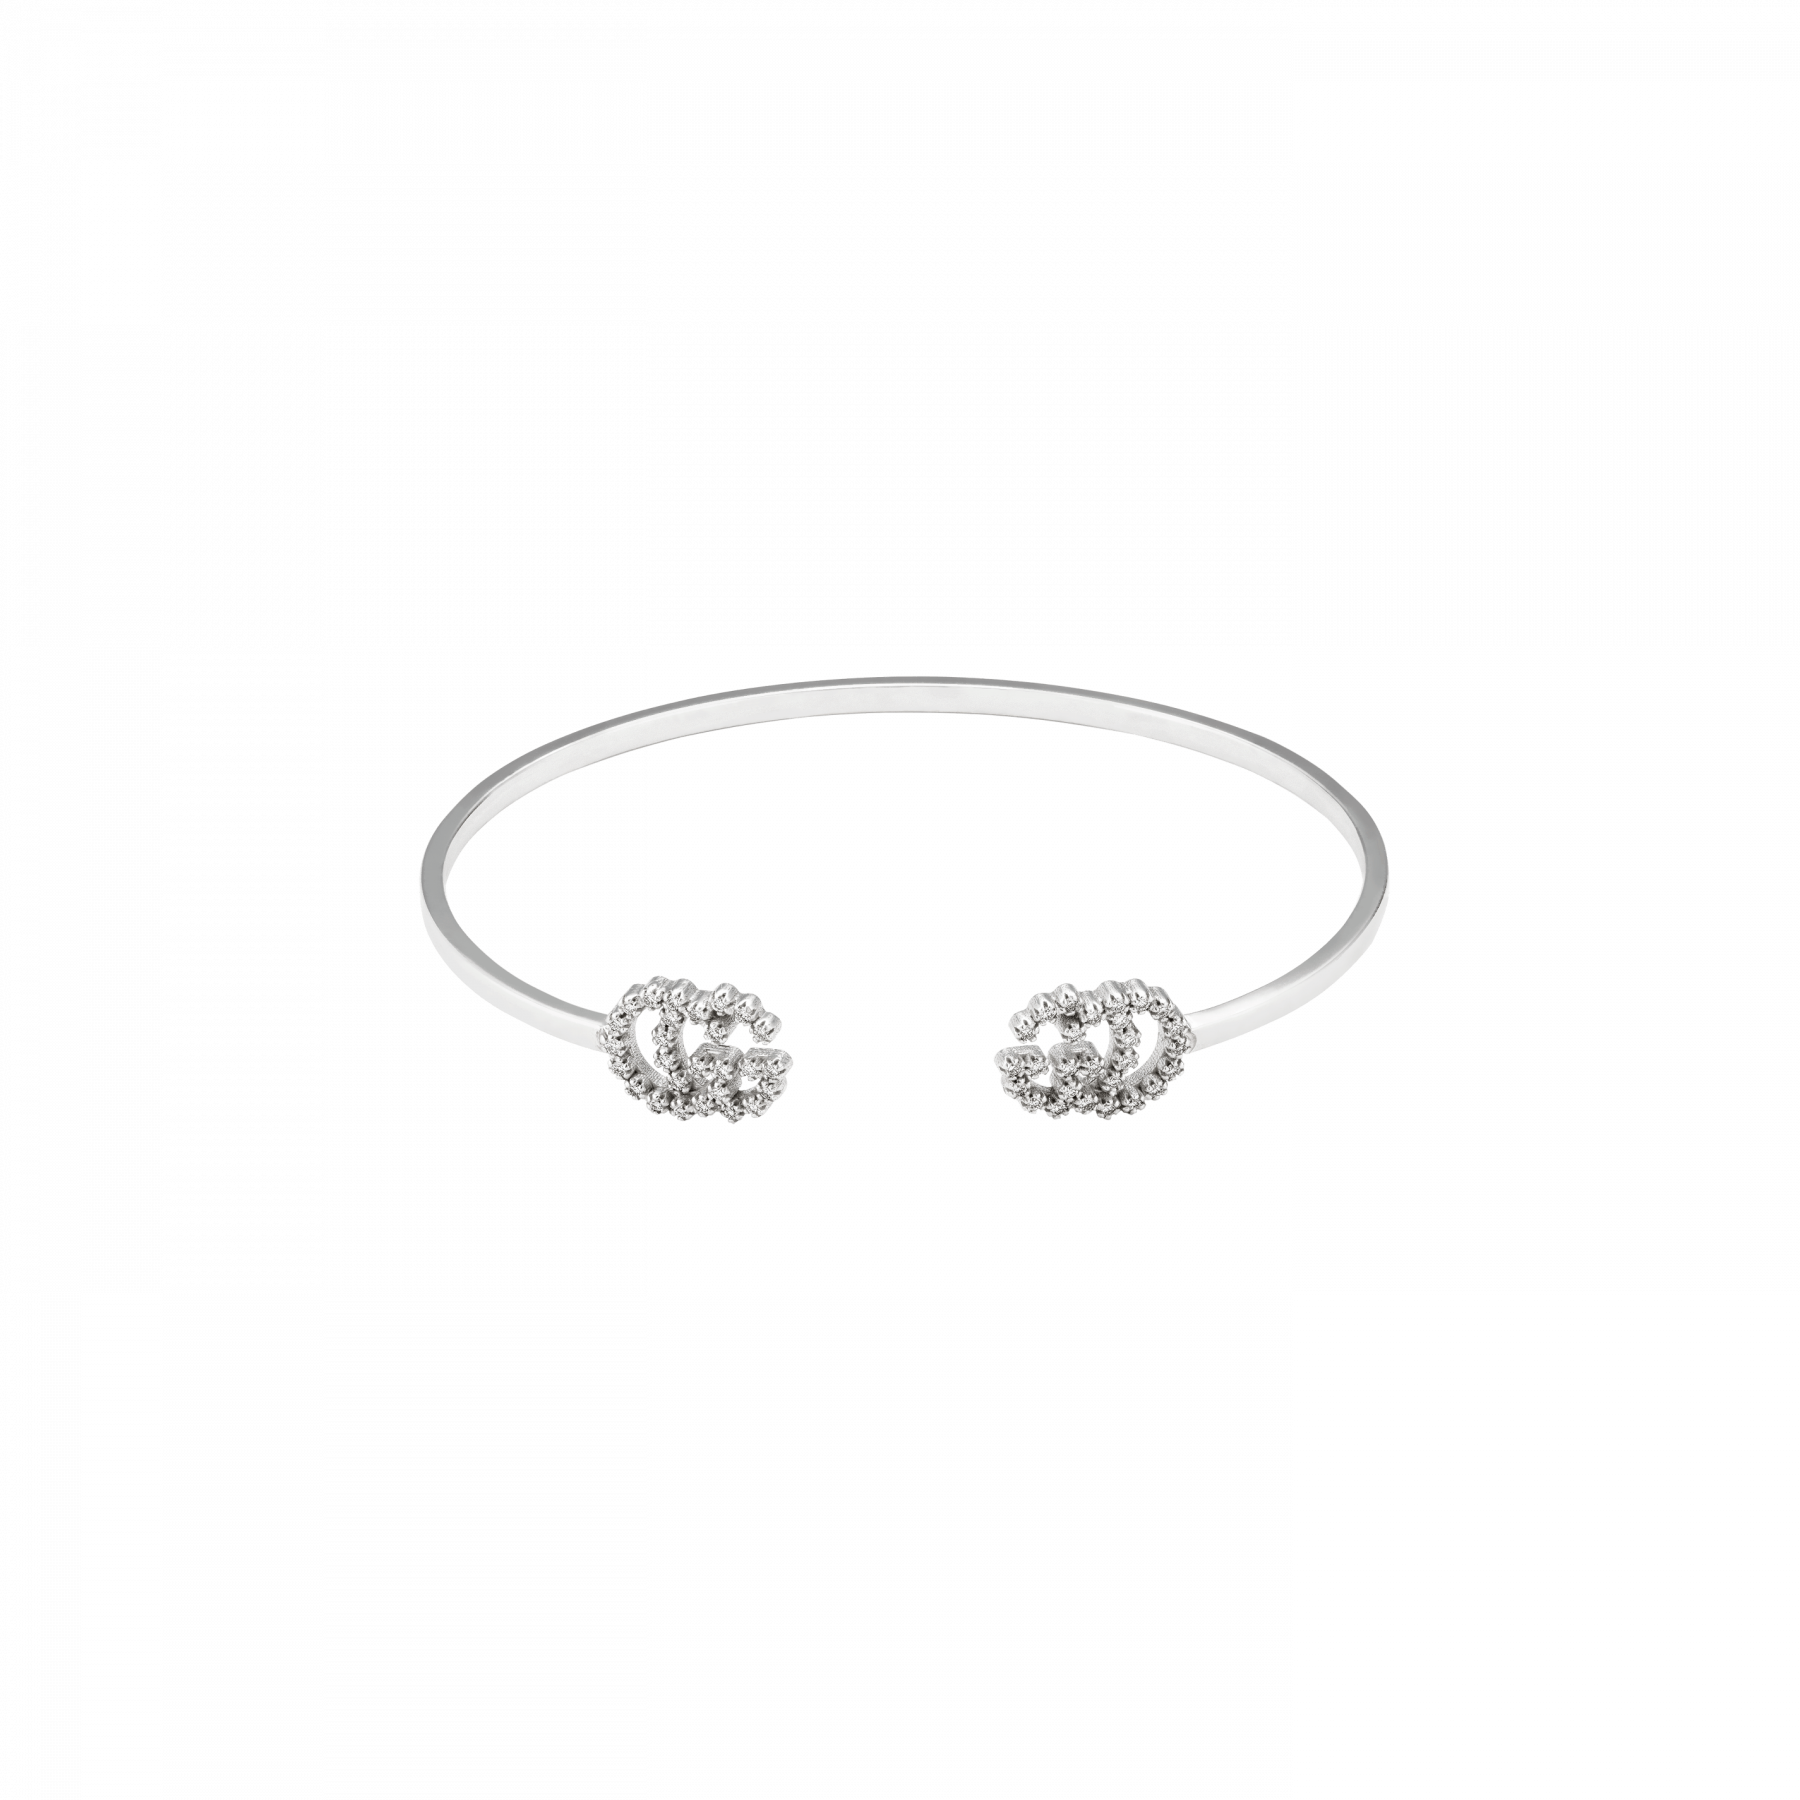 Gucci GG Running Diamond Cuff Bracelet in 18K White Gold main view